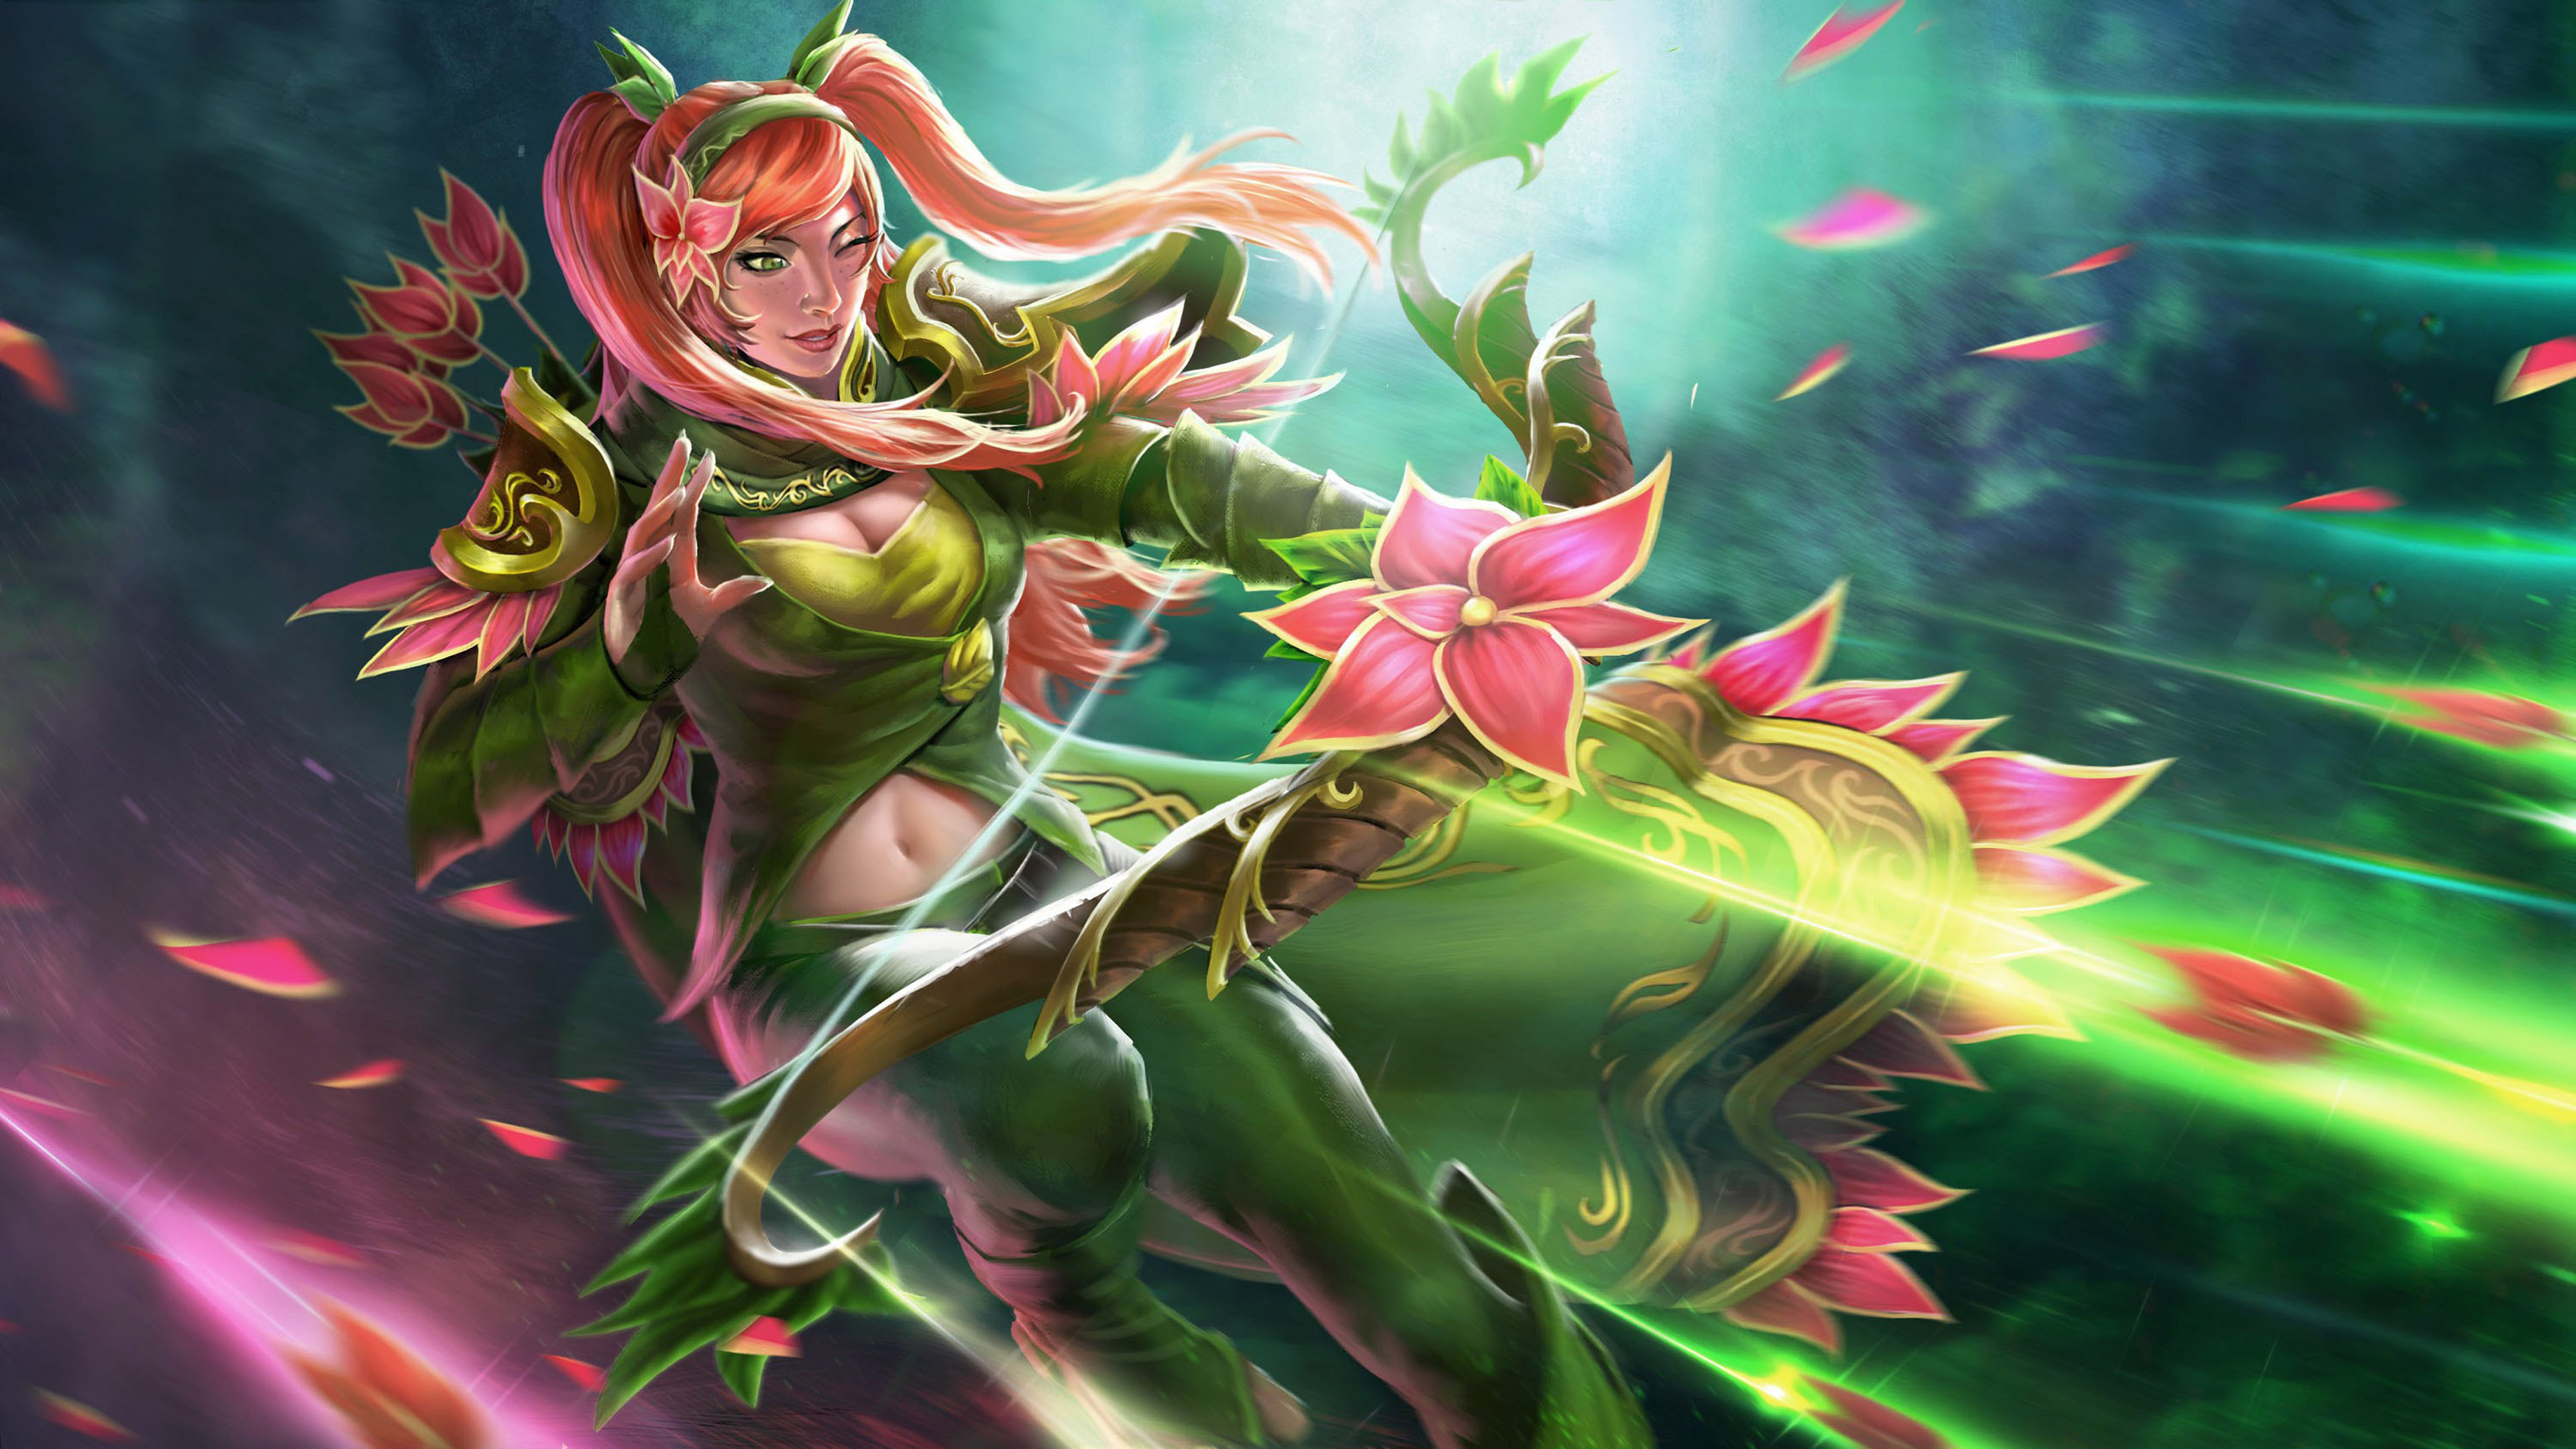 Windranger Dota 2 Heroes Beautiful Girl Orchid Flower Bow